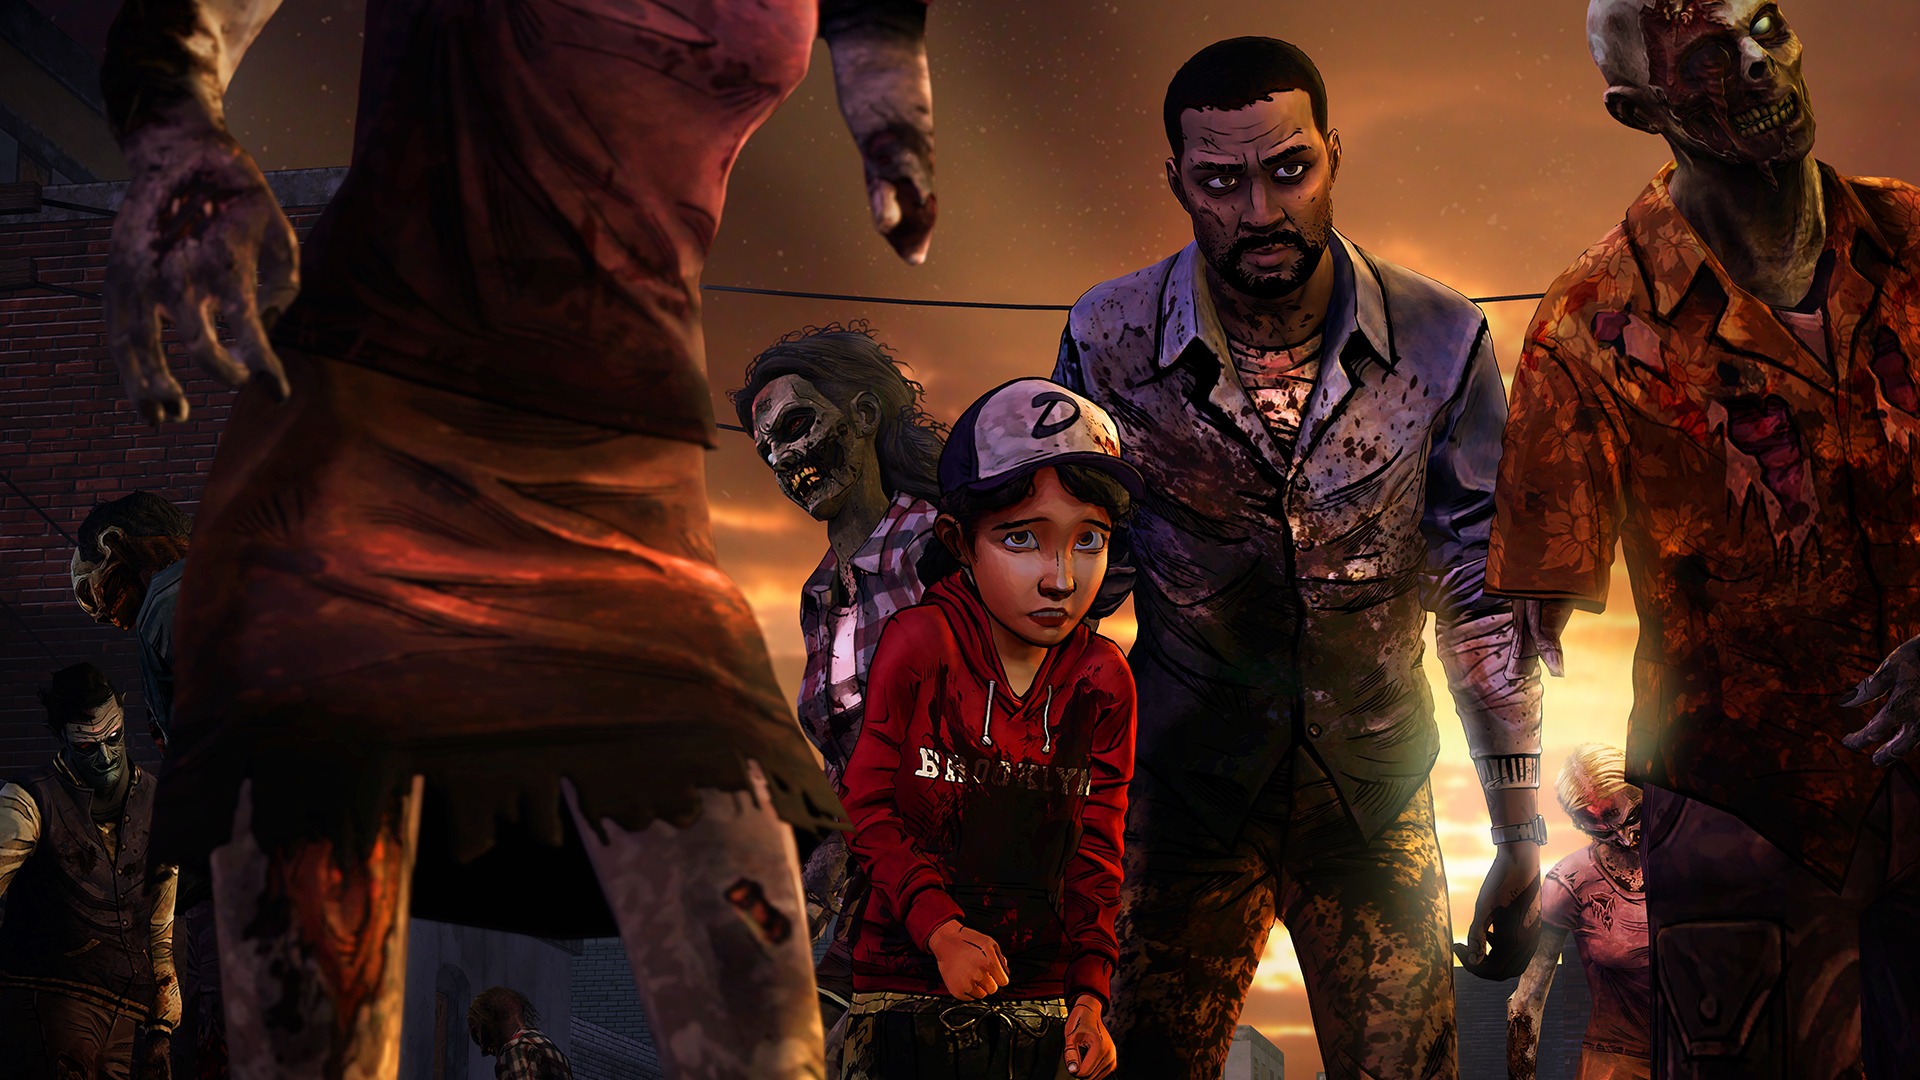 the-walking-dead-the-complete-first-season1-ya-salio-para-nintendo-switch-frikgiamers.com.jpg